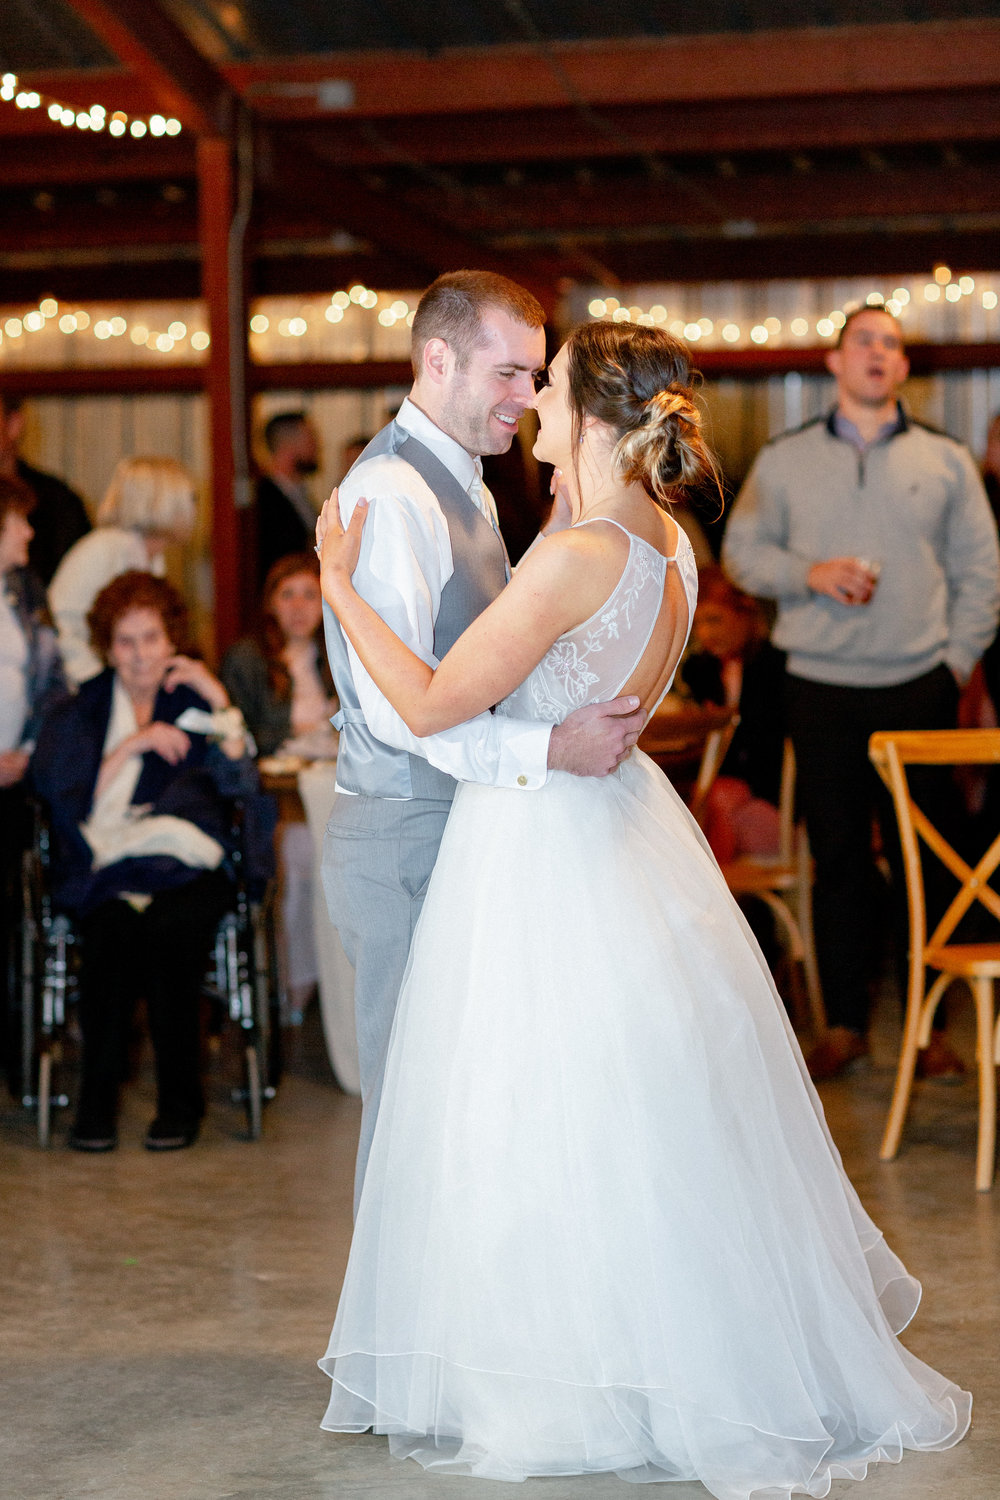 bride-and-groom-first-dance-together.jpg